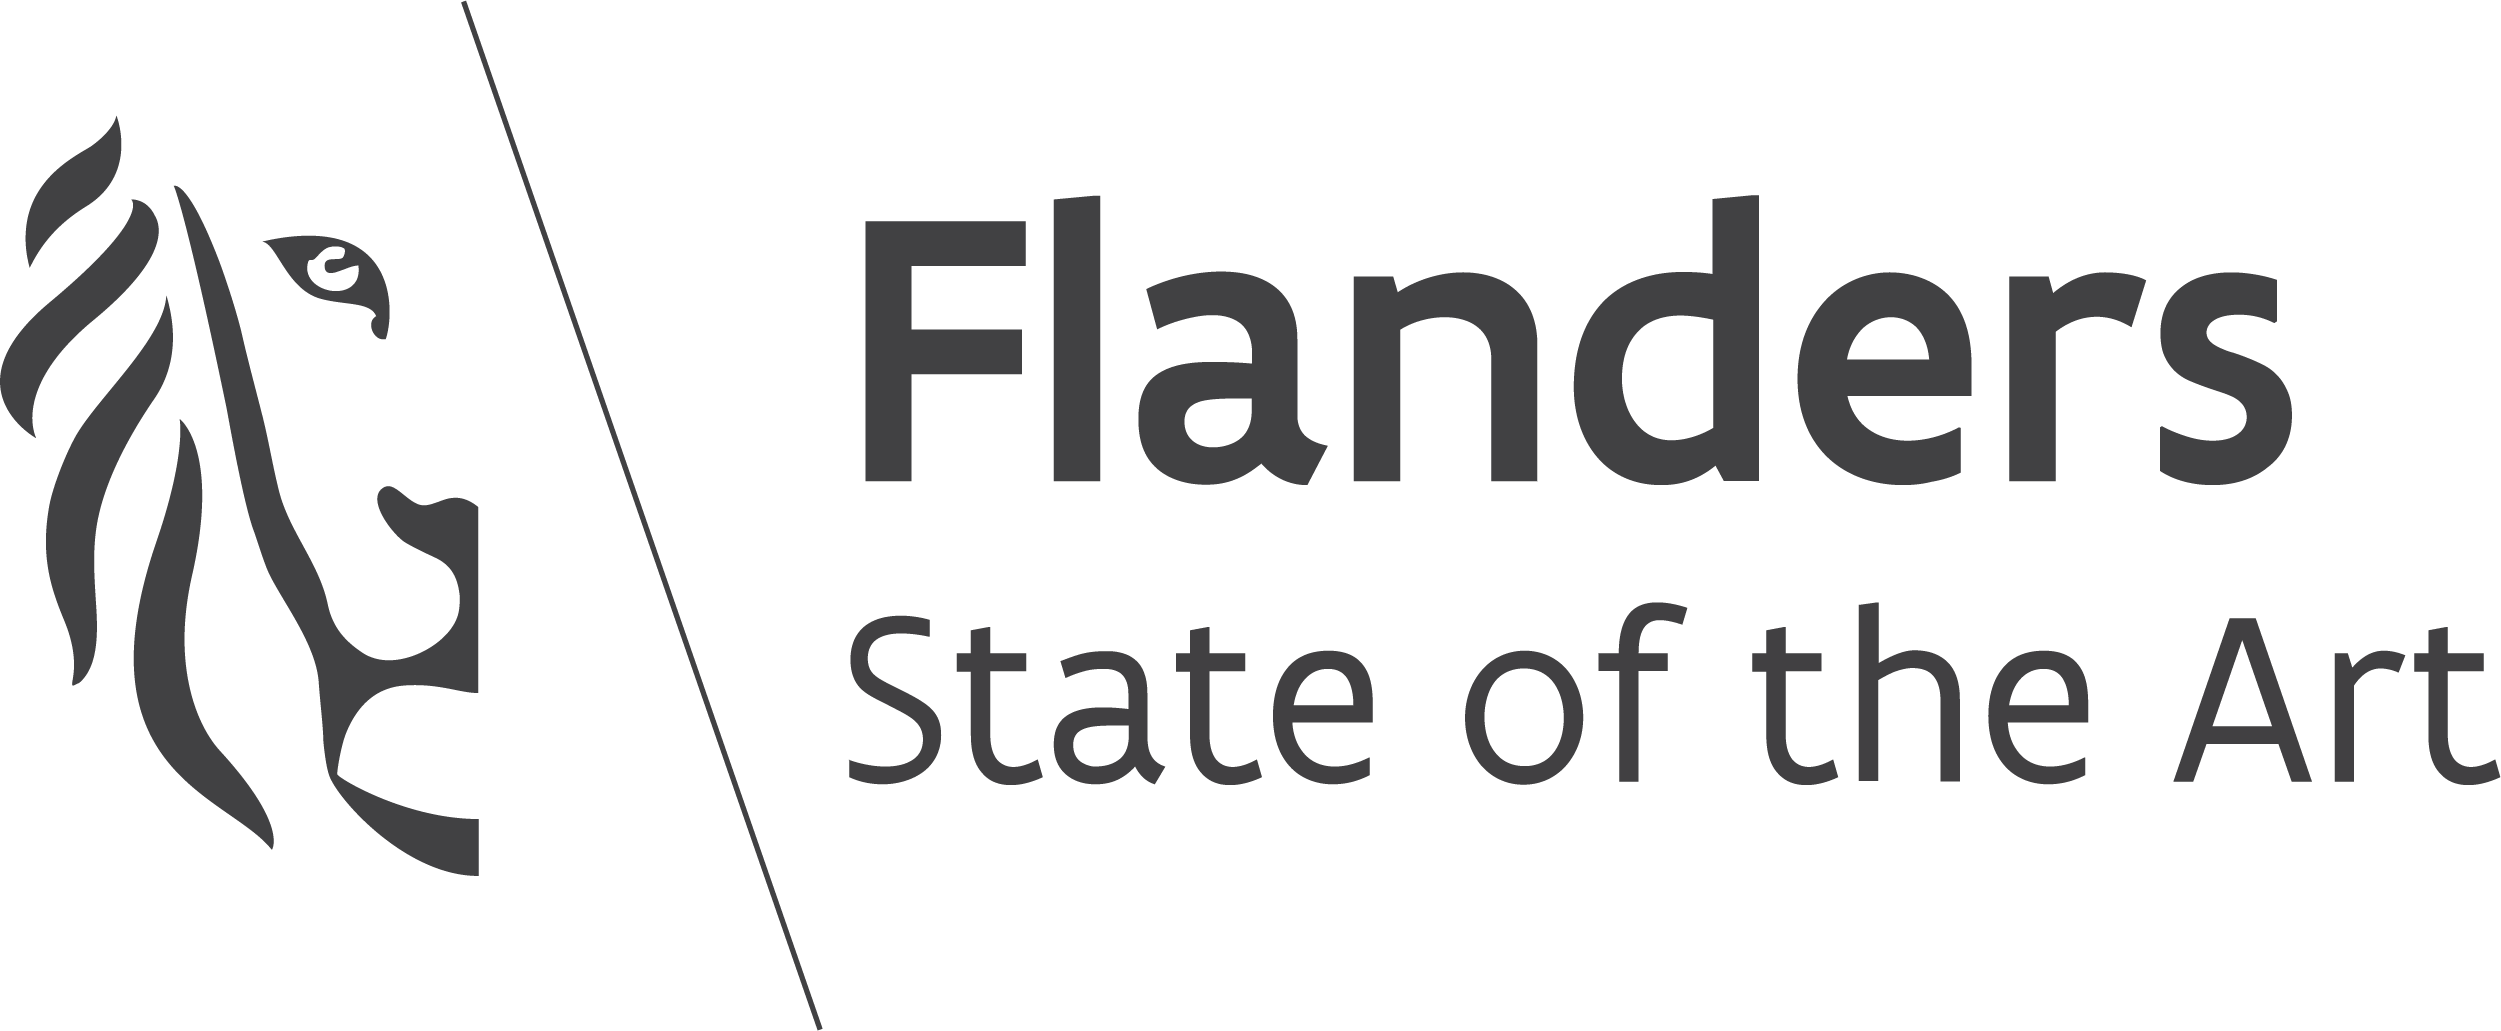 flanders-state-of-the-art